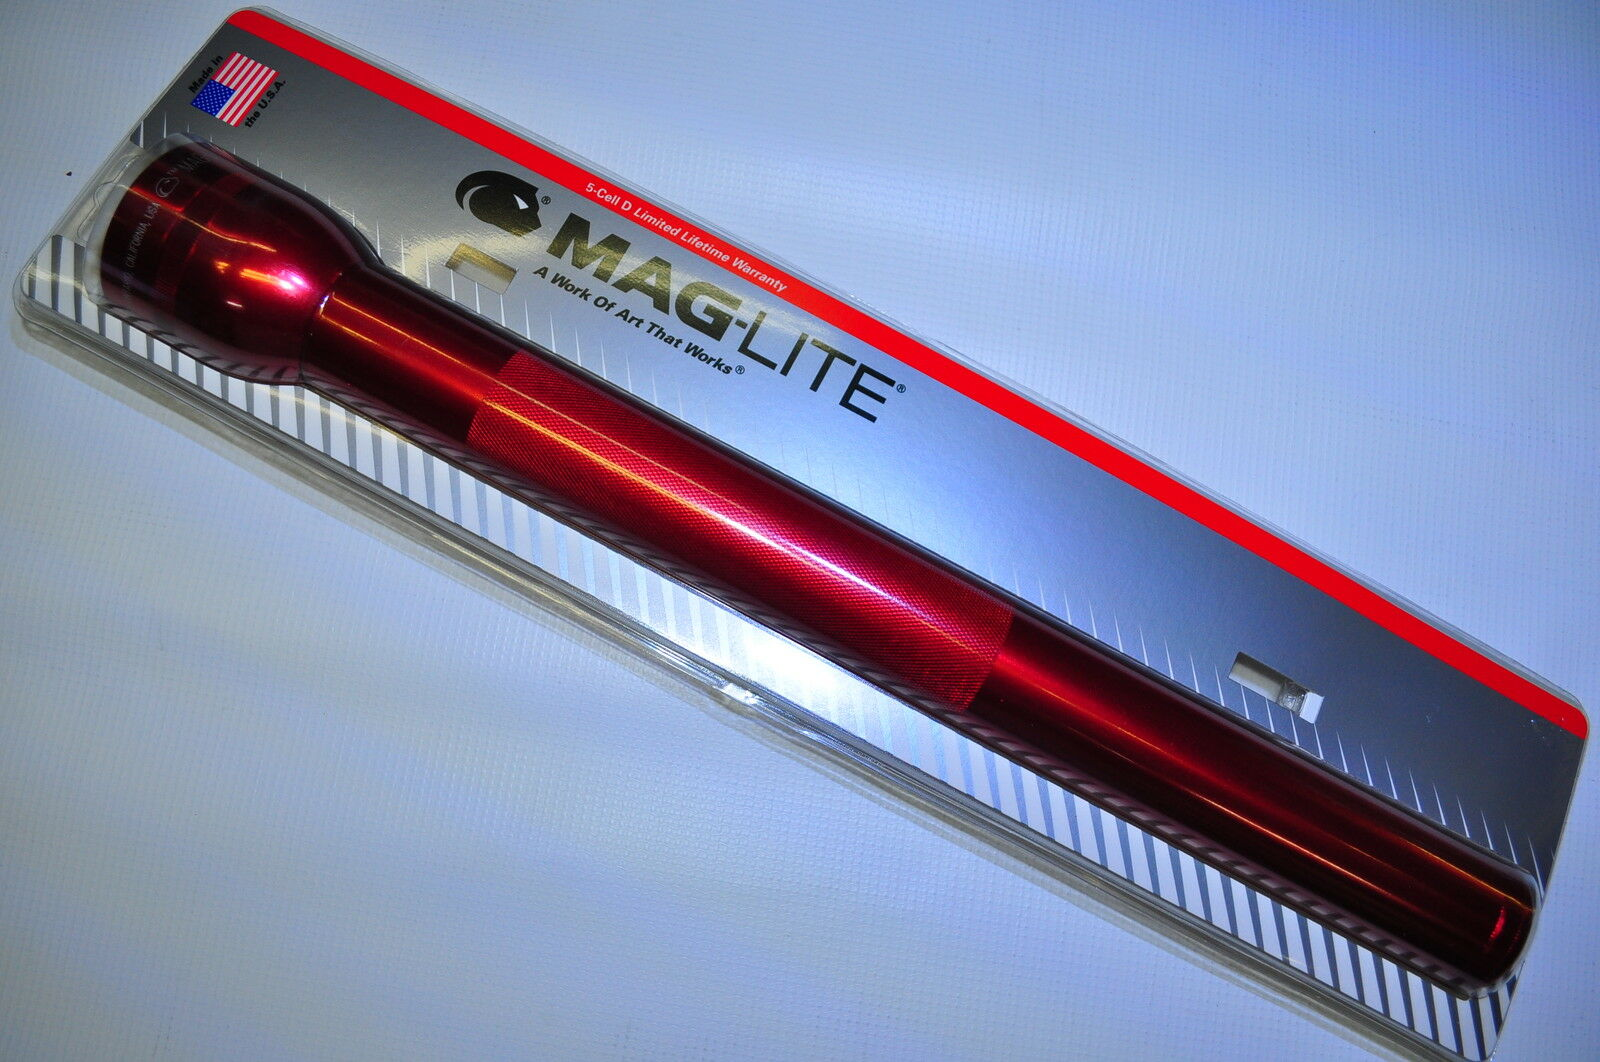 Maglite S5D036 Maglite  Krypton Flashlight 5D-Cell RED 03 96 Model Brand New     discounts and more